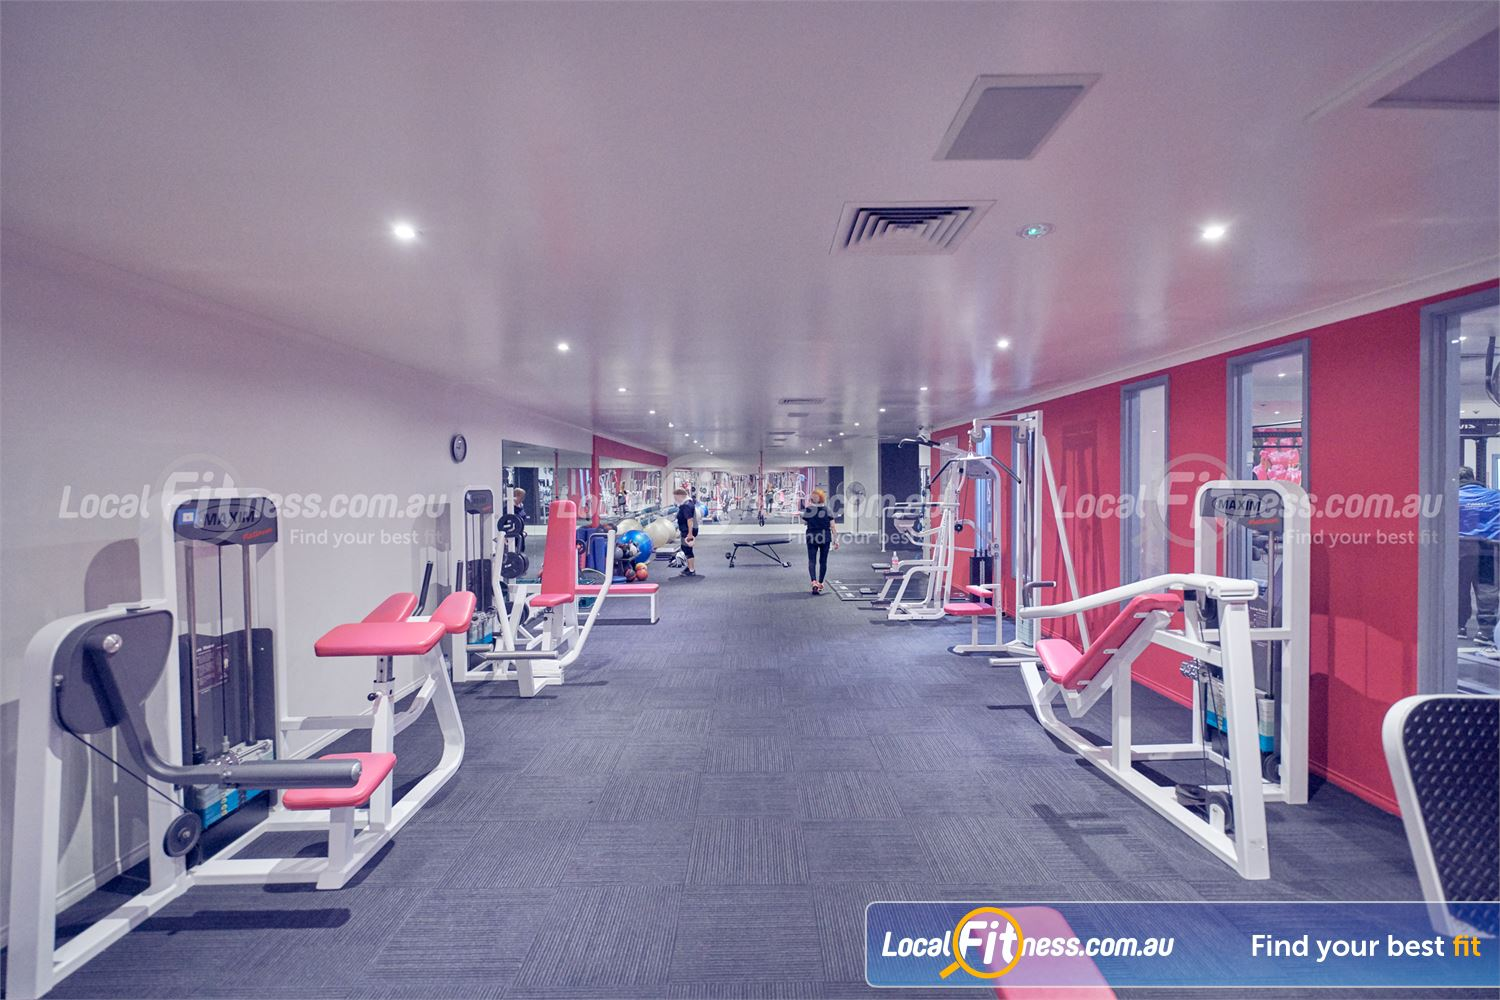 Fernwood Fitness Bulleen At Fernwood Bulleen womens gym, we are dedicated to creating strong and healthier women